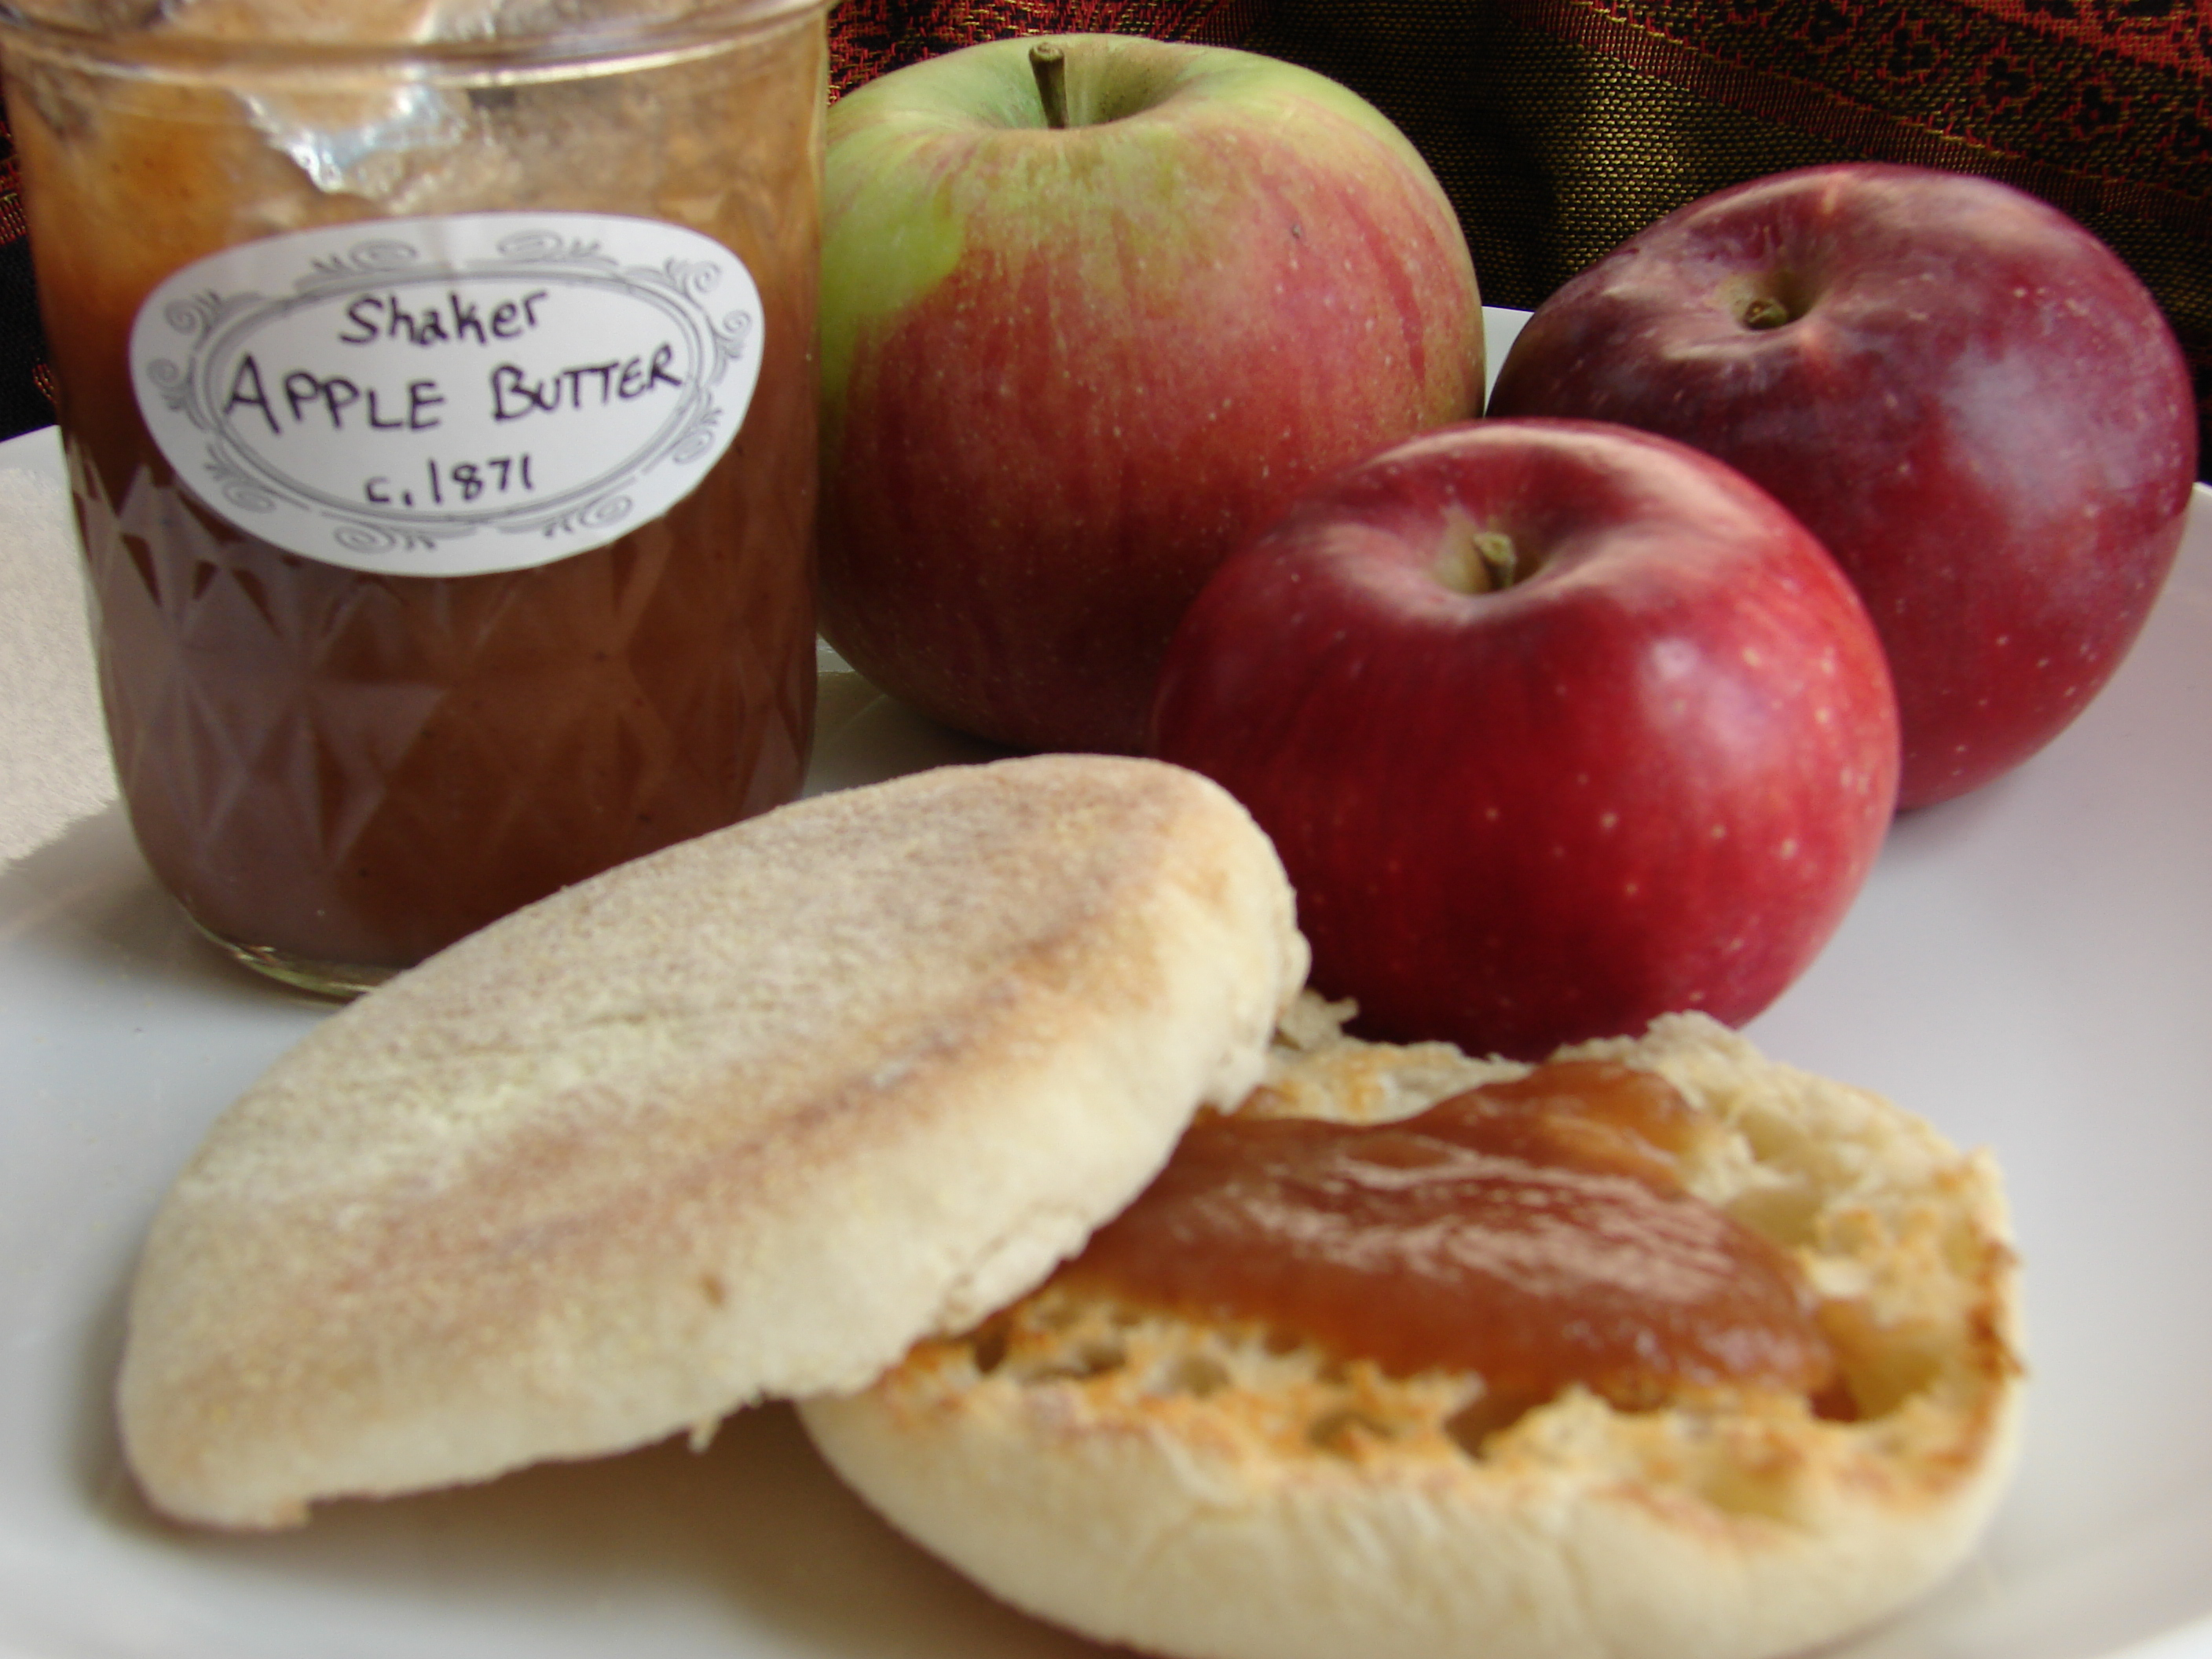 The American Table | Recipe: Shaker Apple Butter (1871)